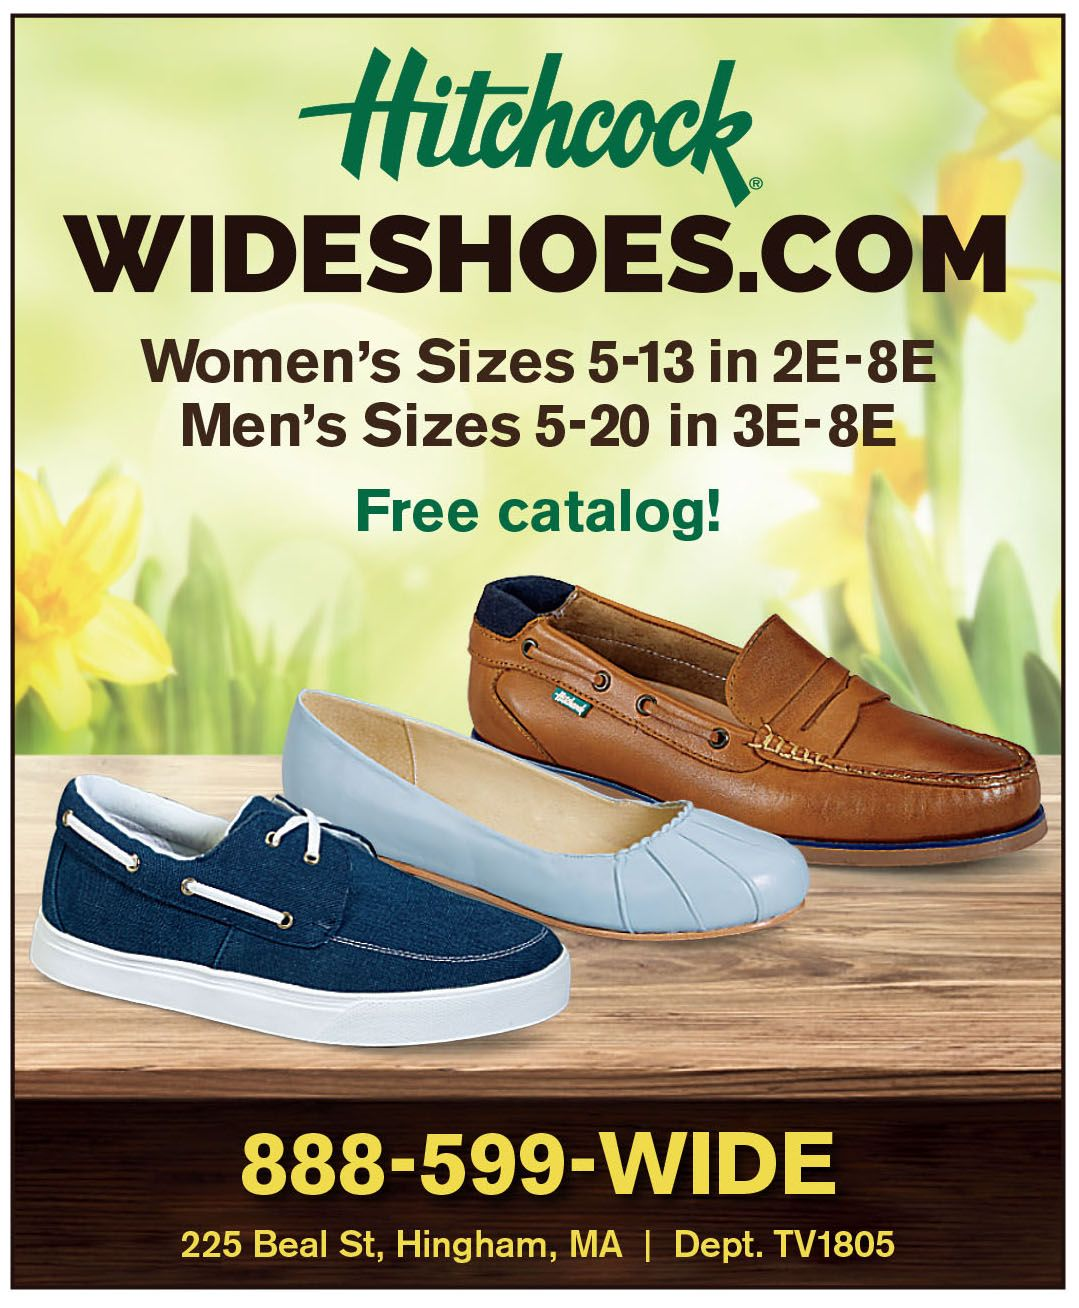 Wide shoes, Hitchcock shoes, Wide shoes